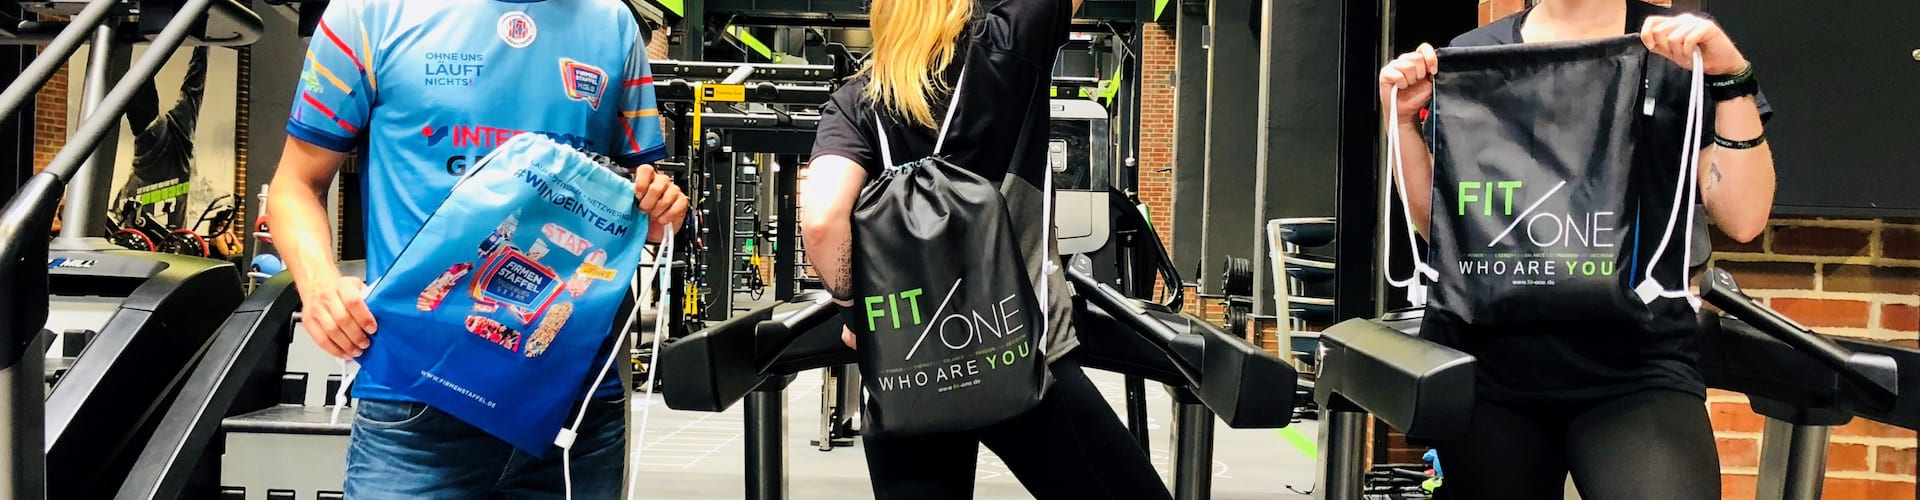 FIT/ONE ist Partner der Firmenstaffel